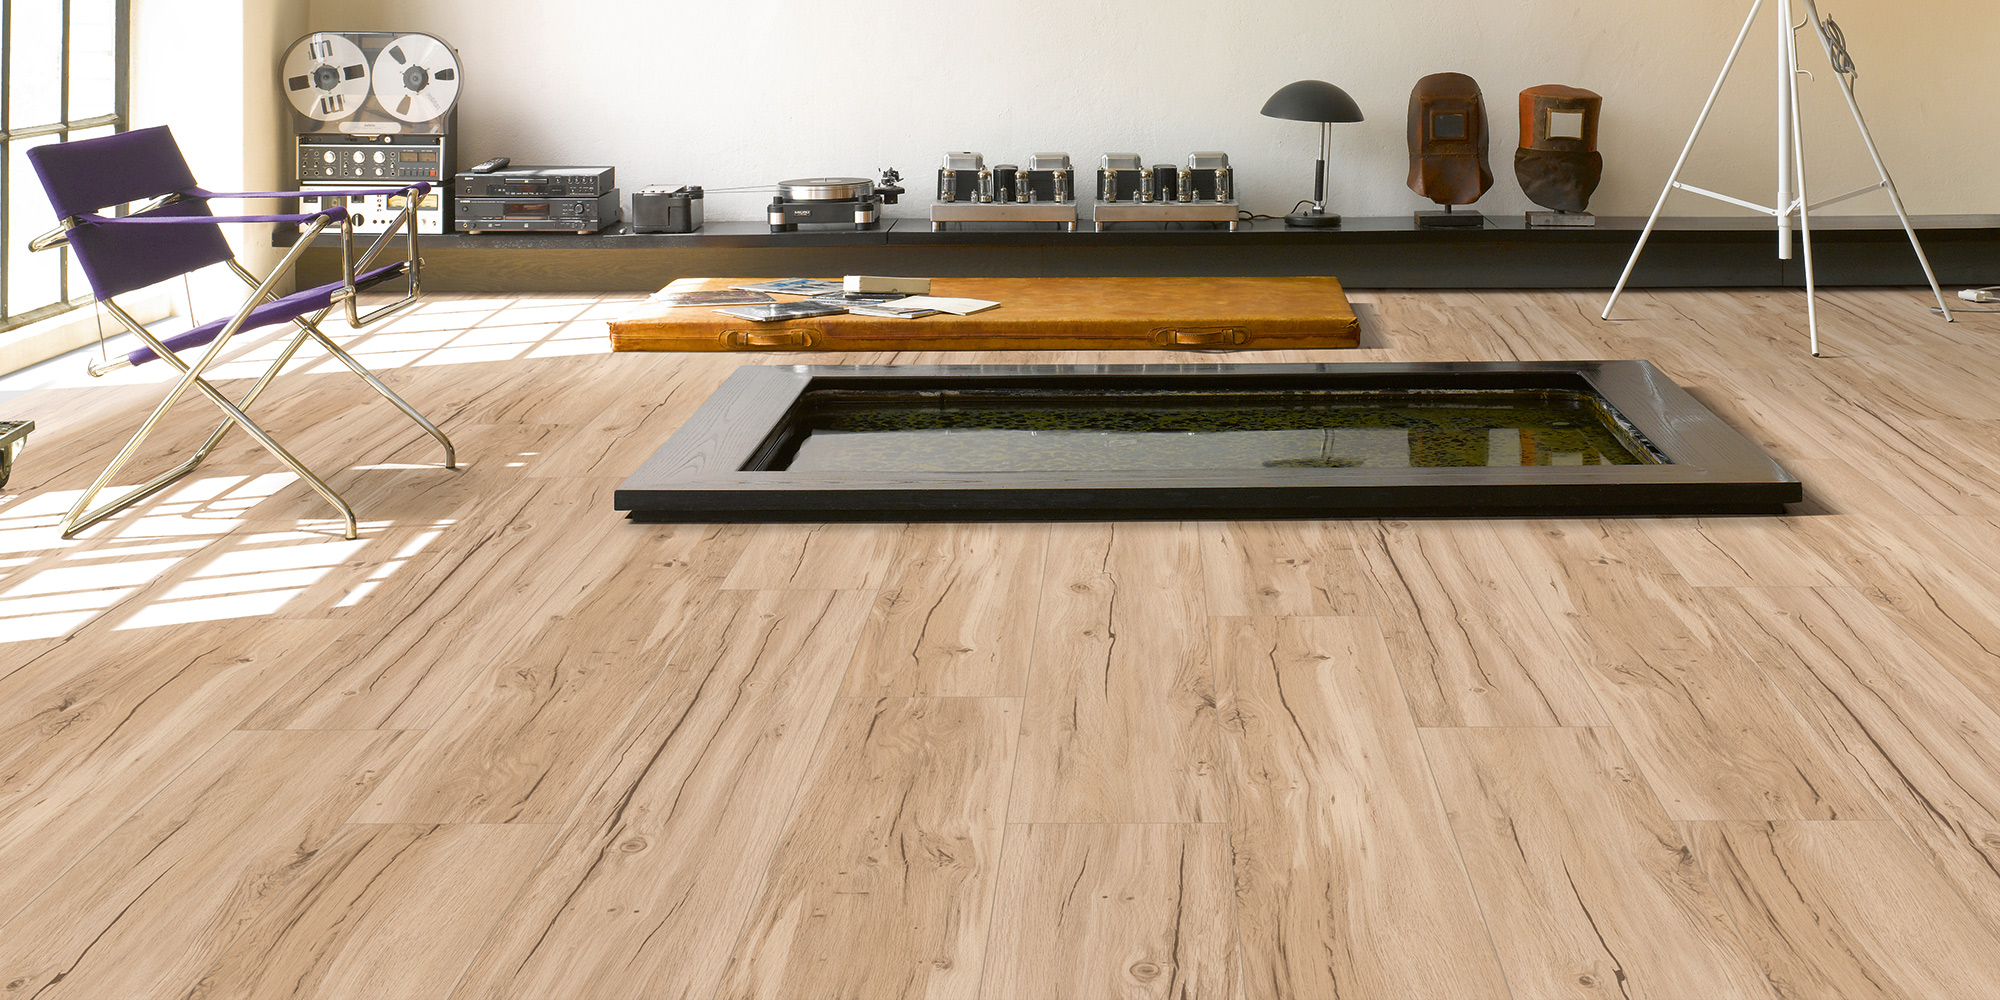 Parador Basic 5.3. Wood effect vinyl flooring.